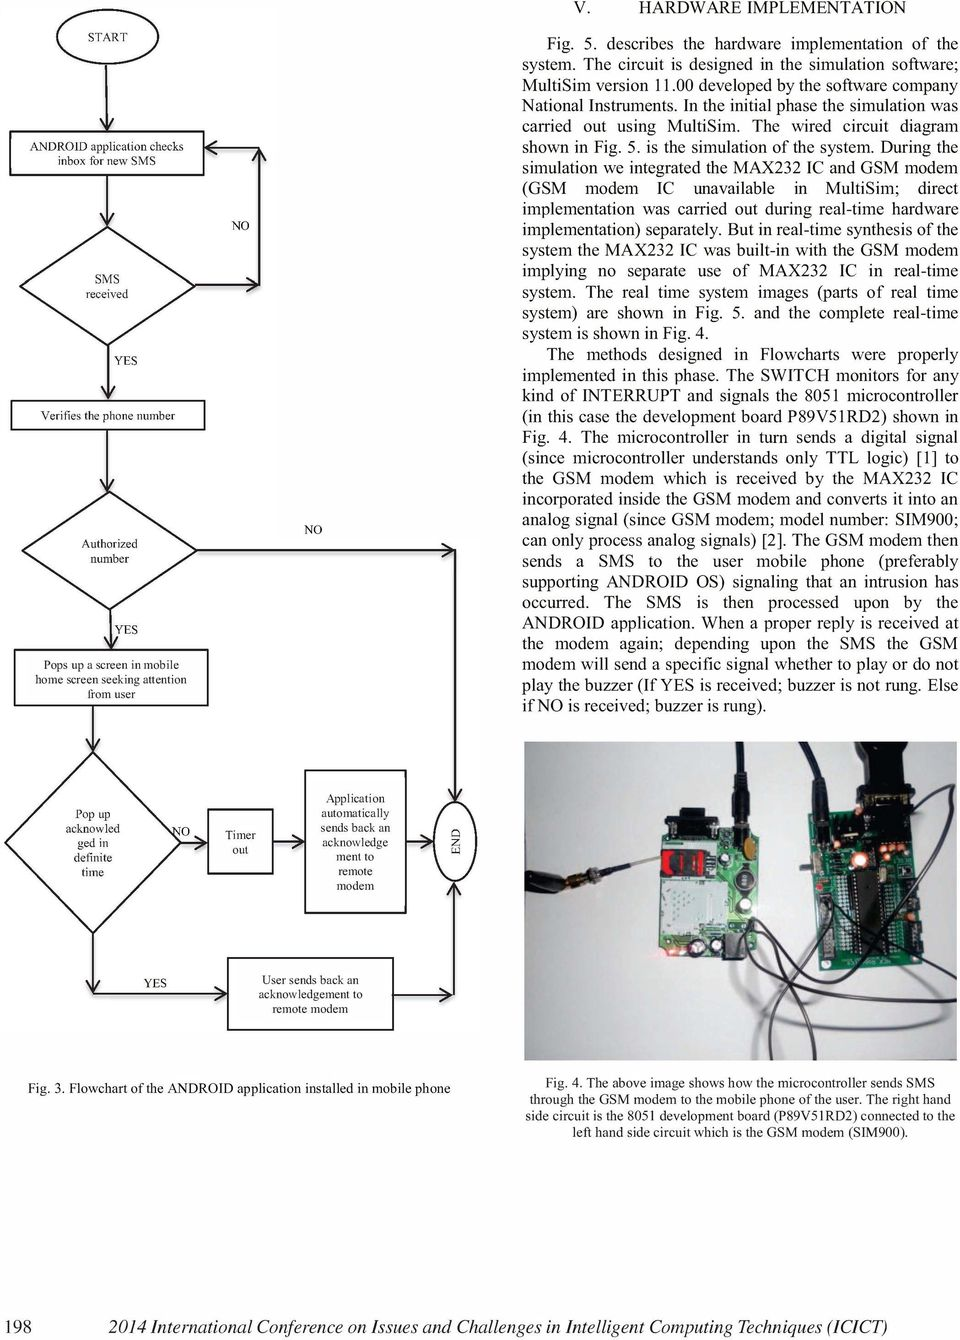 Android Interface Based Gsm Home Security System Pdf Modem With 8051 Microcontroller The Wired Circuit Diagram Shown In Fig 5 Is Simulation Of 4 Interrupt Detector